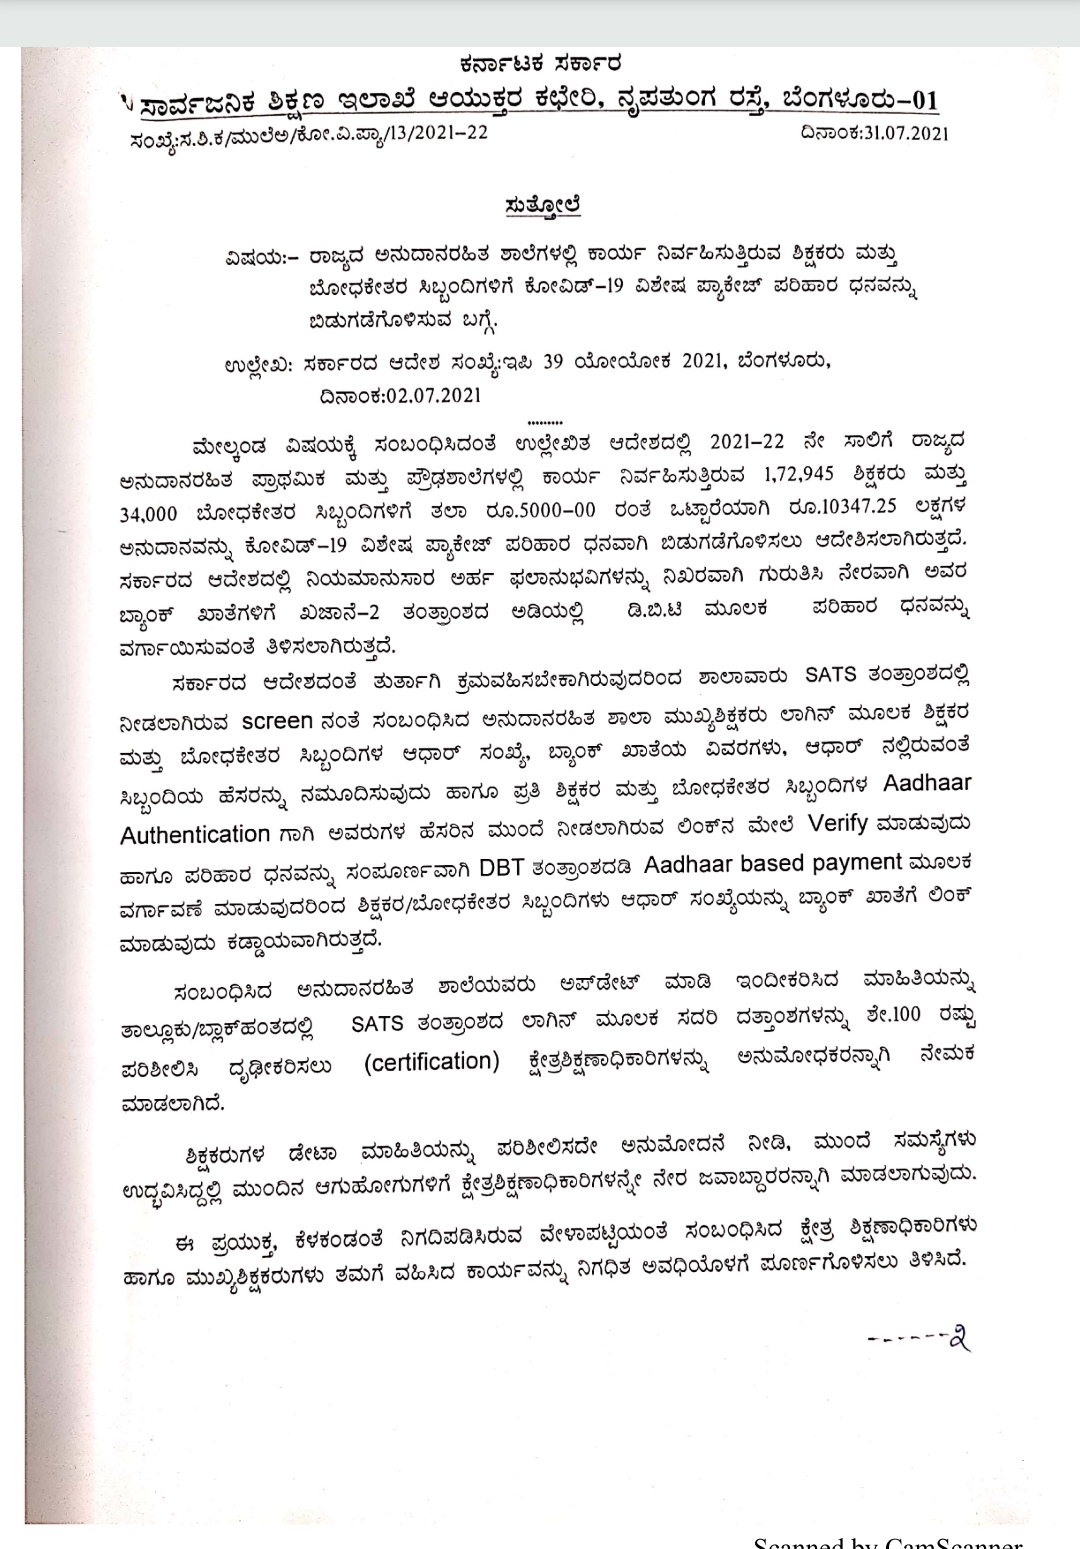 About the release of Kovid-19 Package Relief Fund for teachers and non-teaching staff on duty in state-funded schools